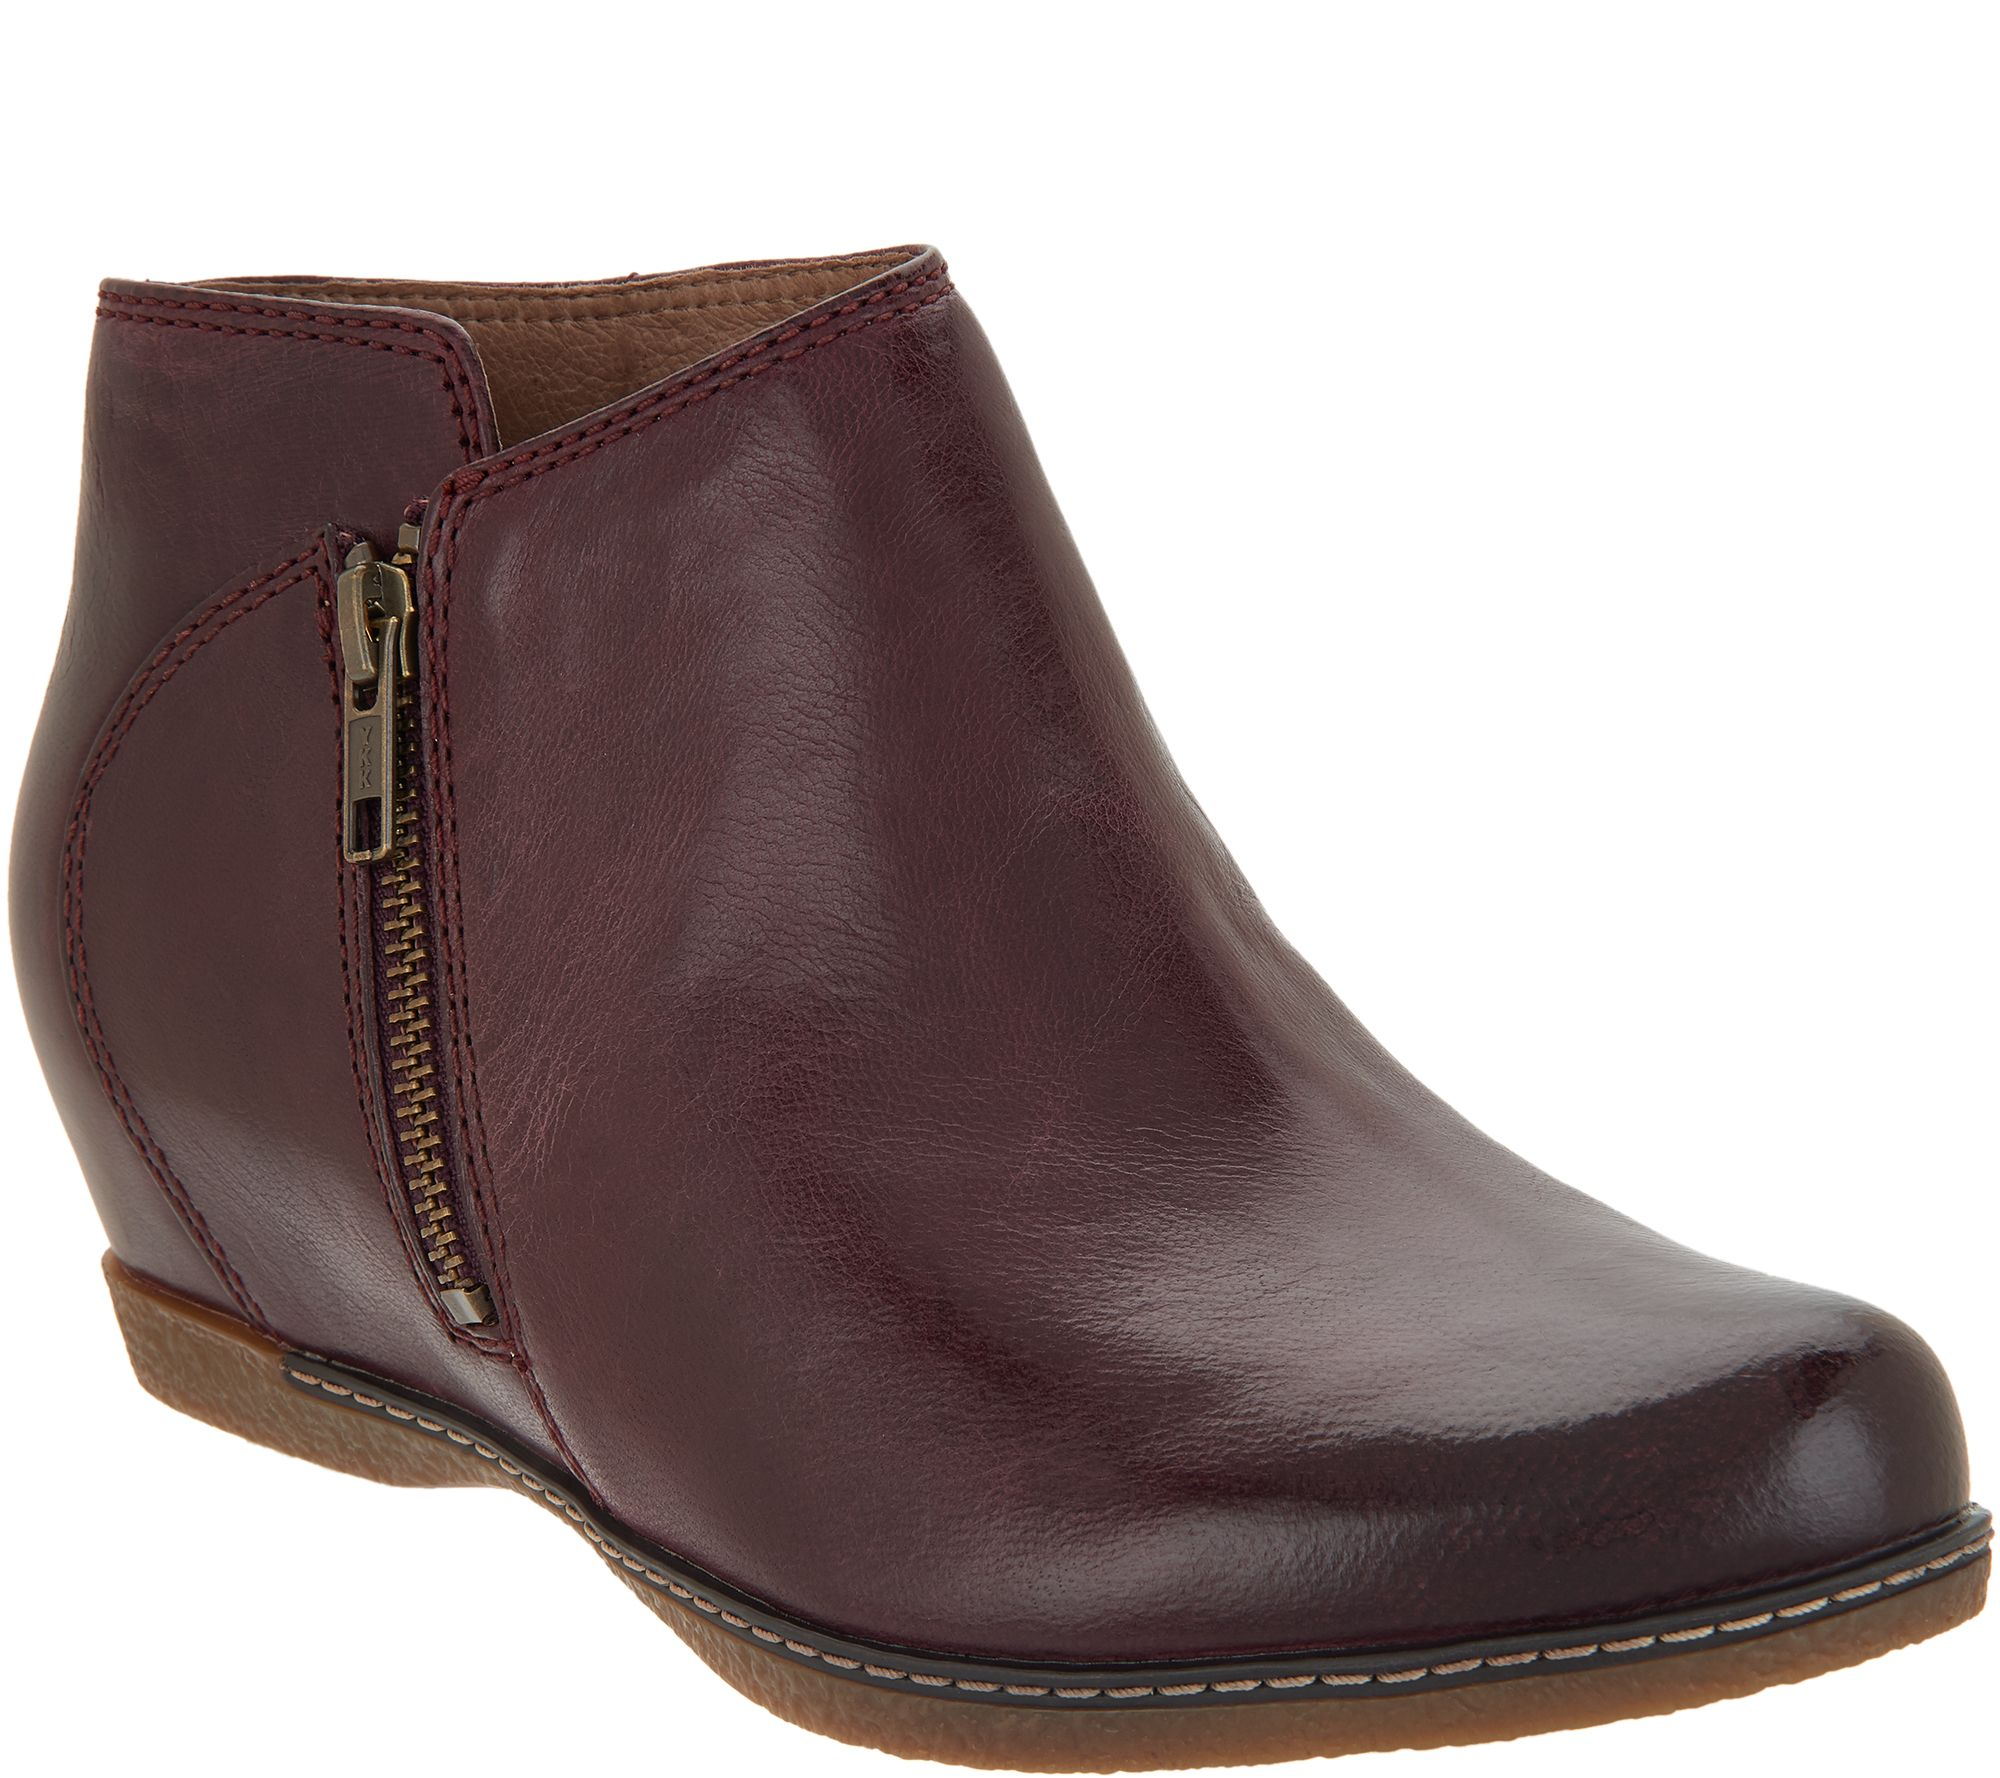 e4b432ef5 Dansko Leather Wedge Ankle Boots - Leyla - Page 1 — QVC.com